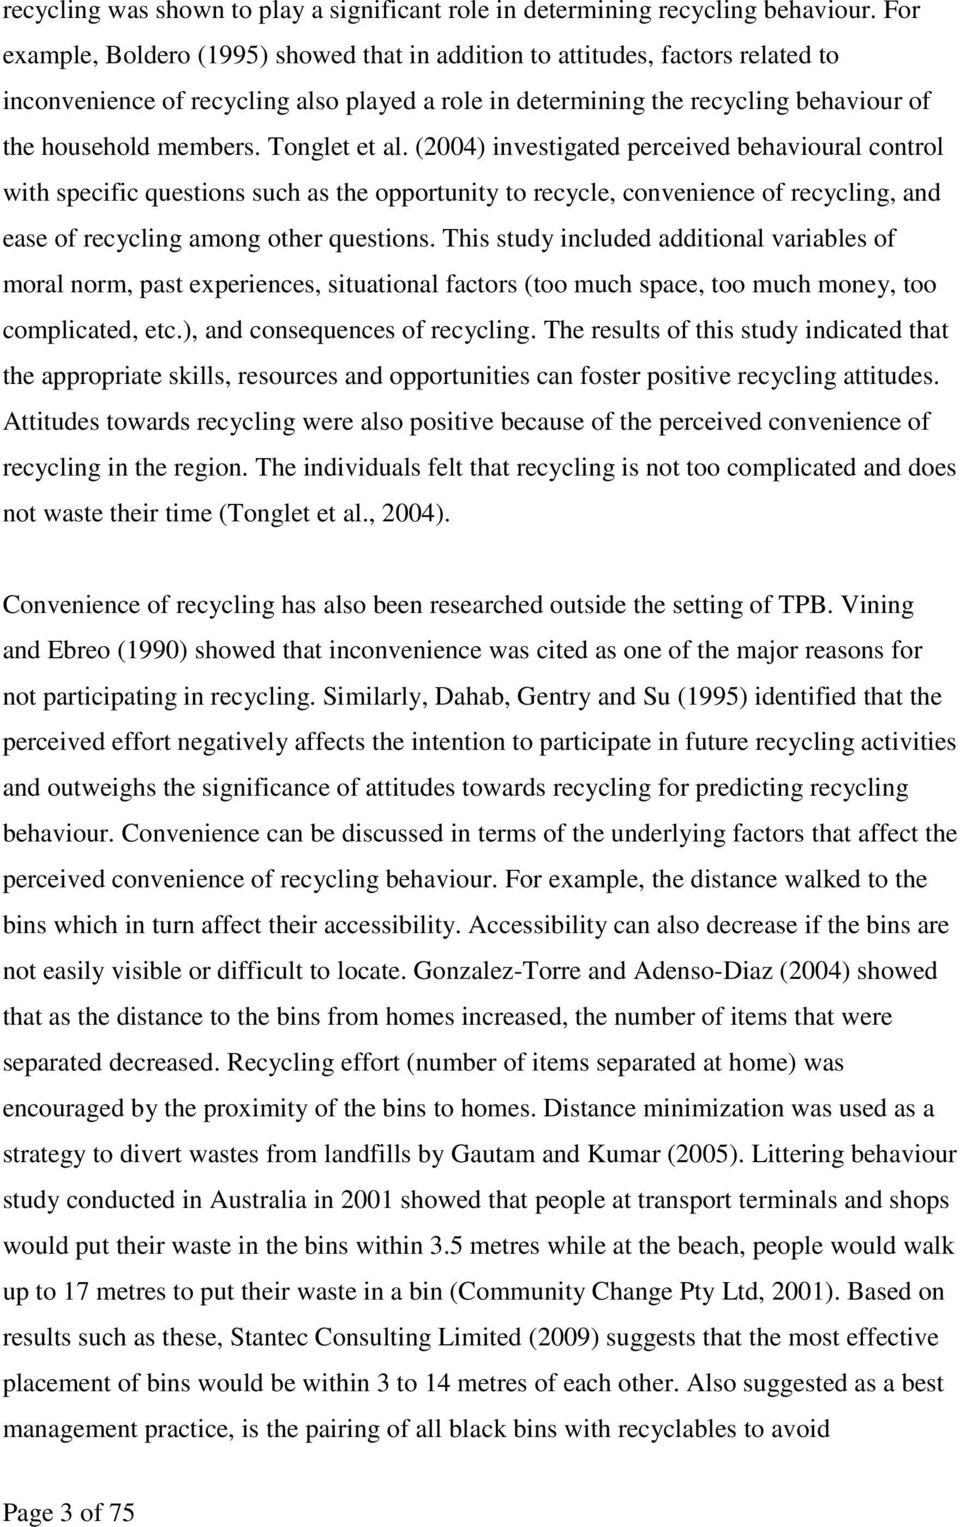 Tonglet et al. (2004) investigated perceived behavioural control with specific questions such as the opportunity to recycle, convenience of recycling, and ease of recycling among other questions.